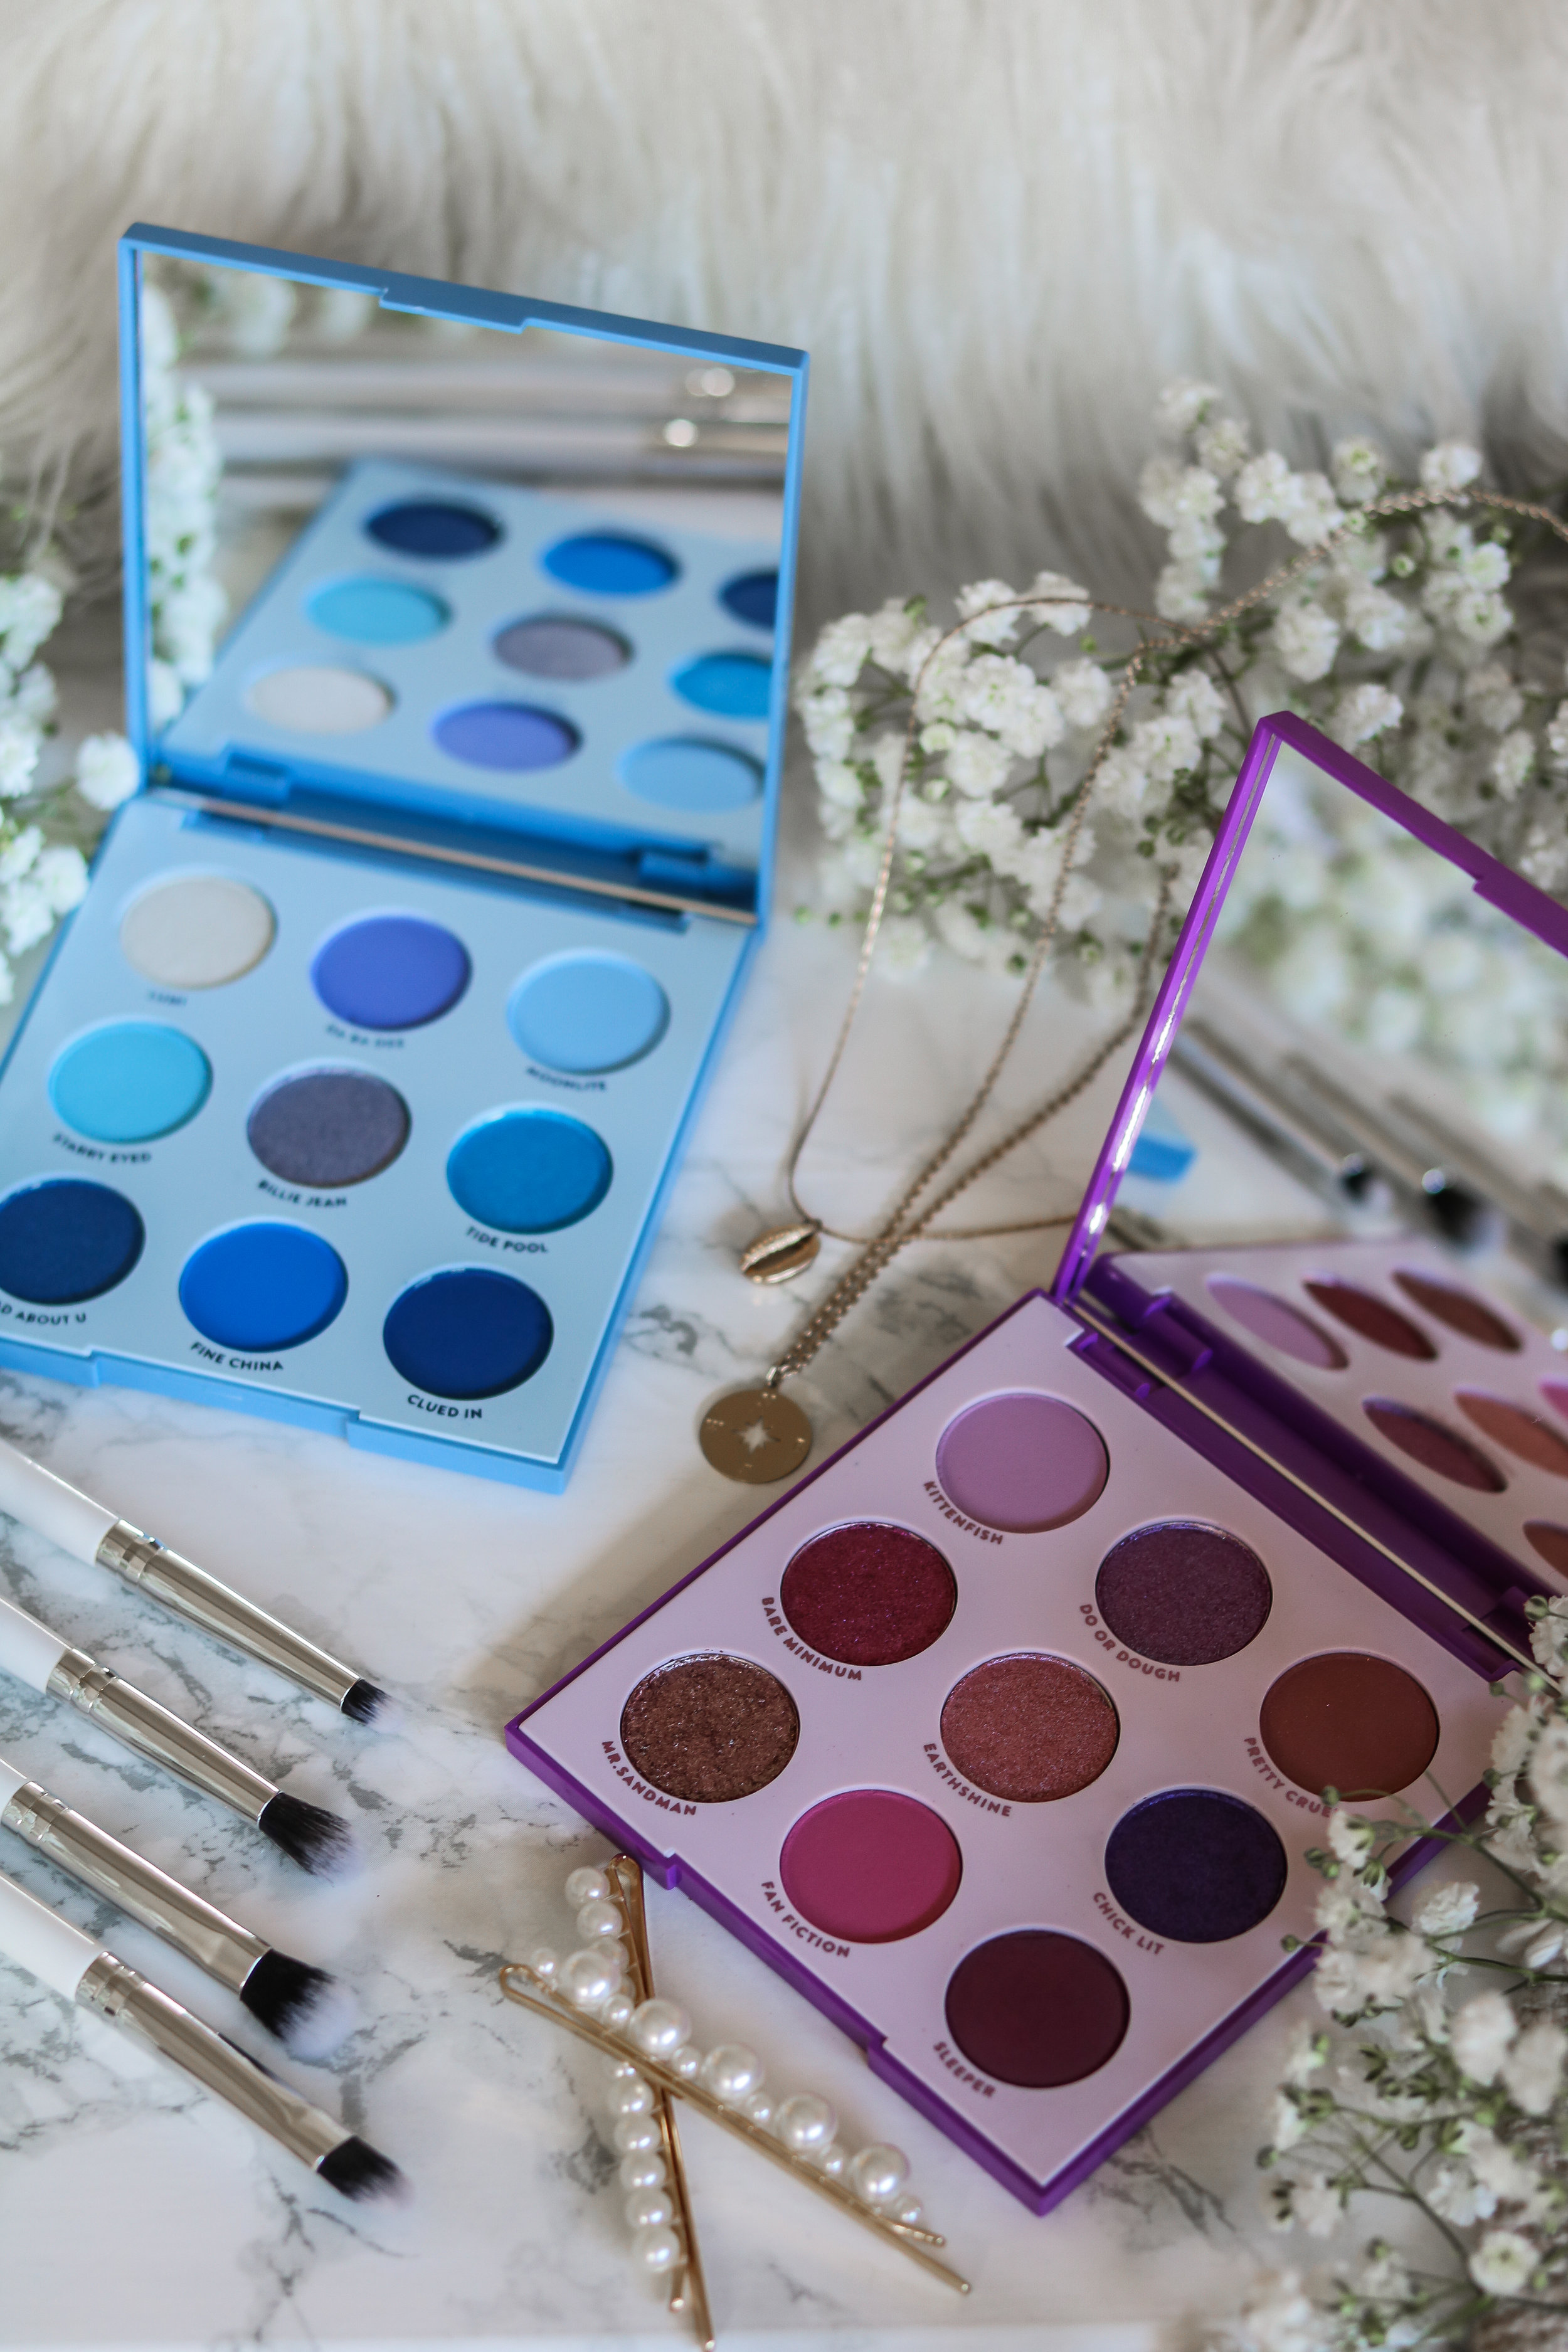 The Hungarian Brunette Colourpop Cosmetics Blue moon and it's my pleasure eyeshadow palette review and swatches - Purple palette + Blue palette (1 of 9).jpg